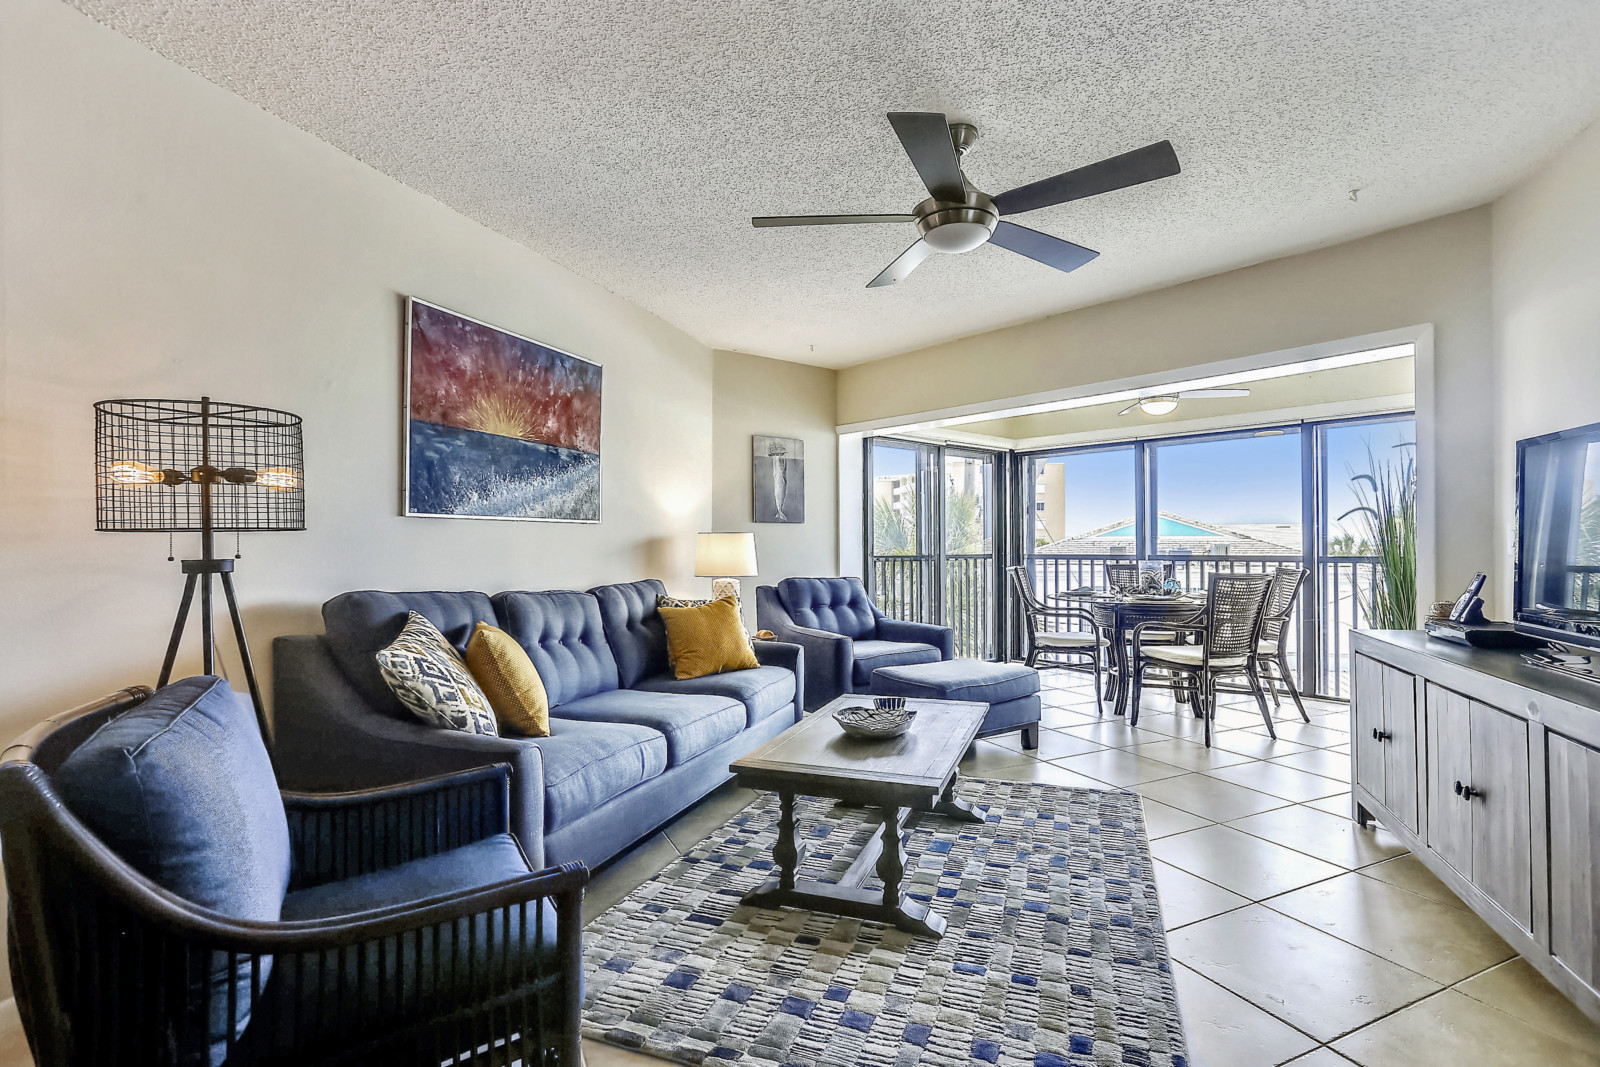 Living room of a Liddie's Place, an Anna Maria Island vacation rental